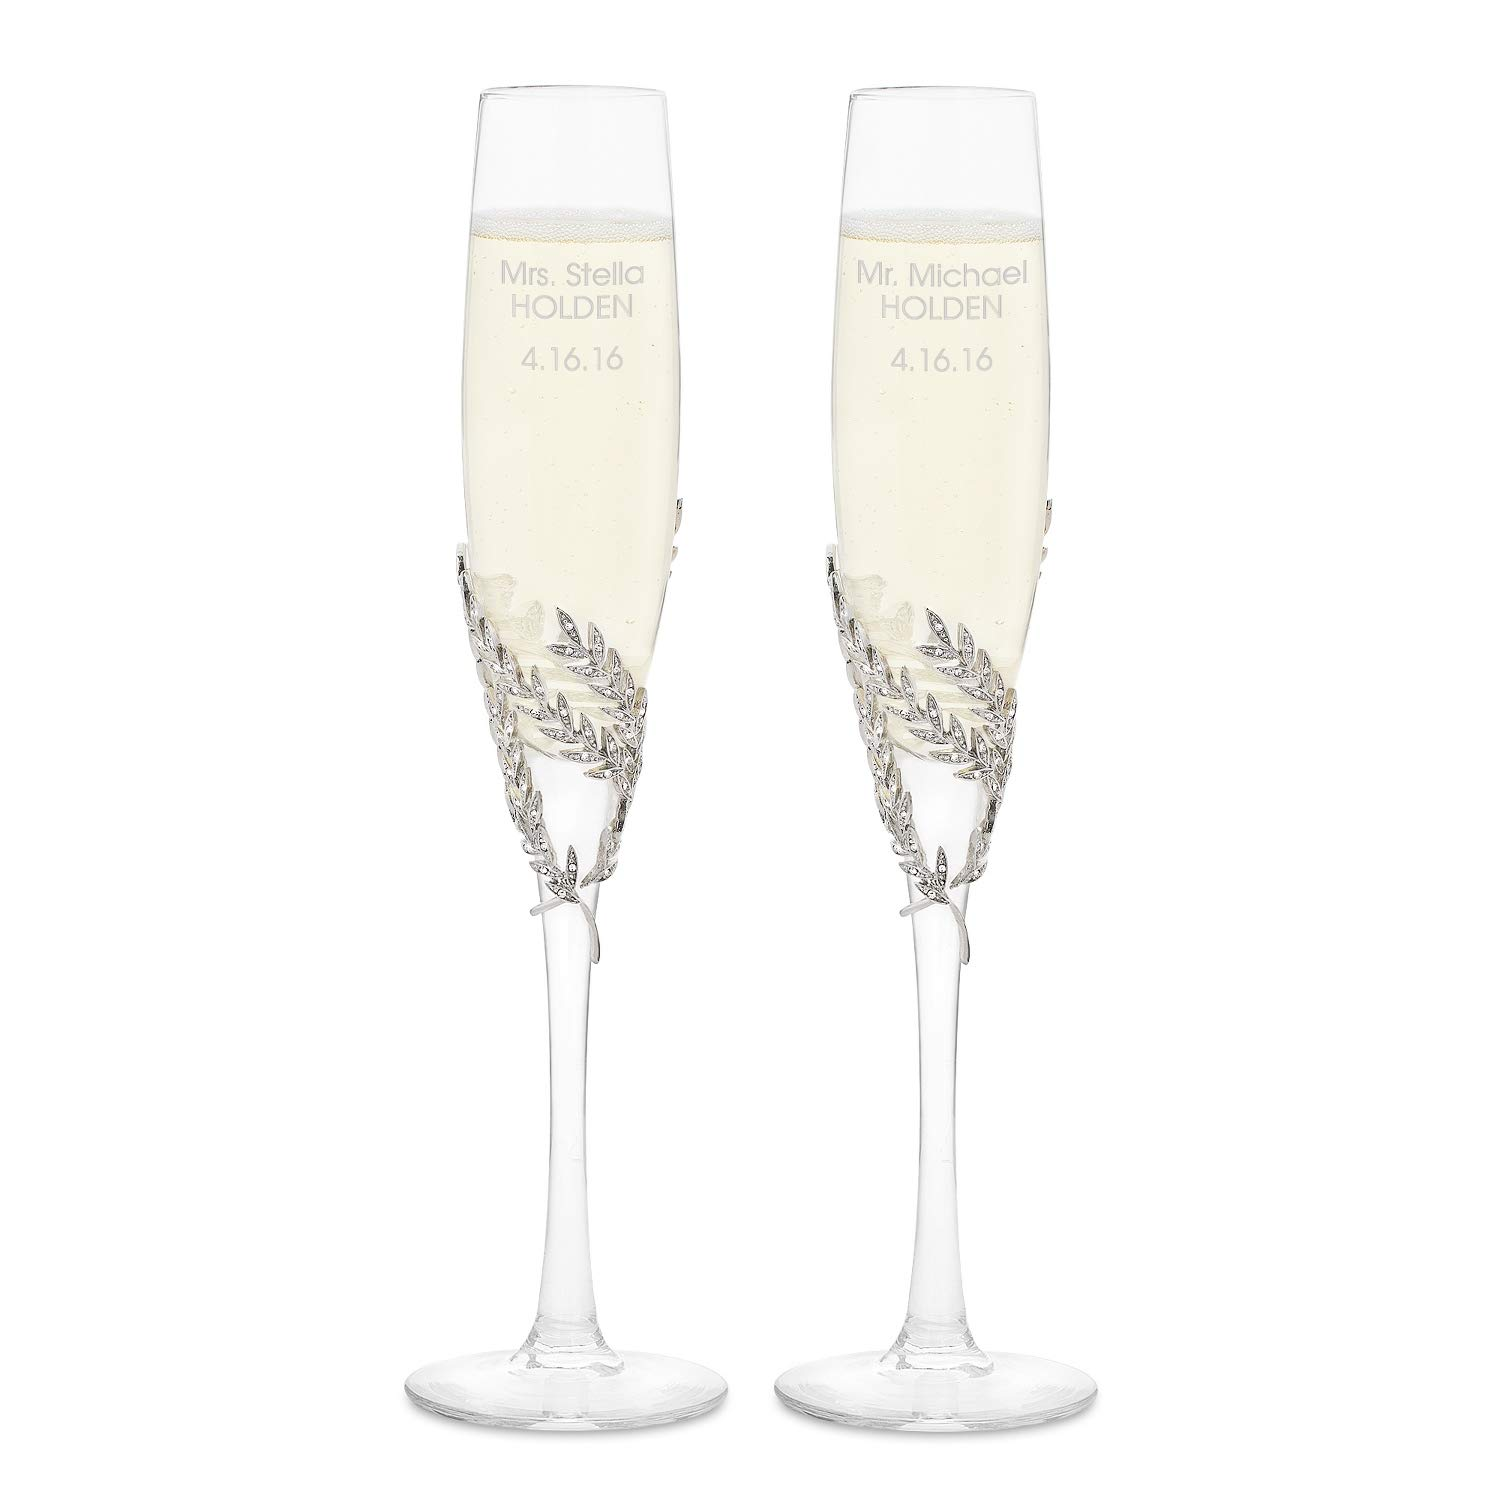 Things Remembered Personalized Athena Pavé Champagne Flute Set with Engraving Included